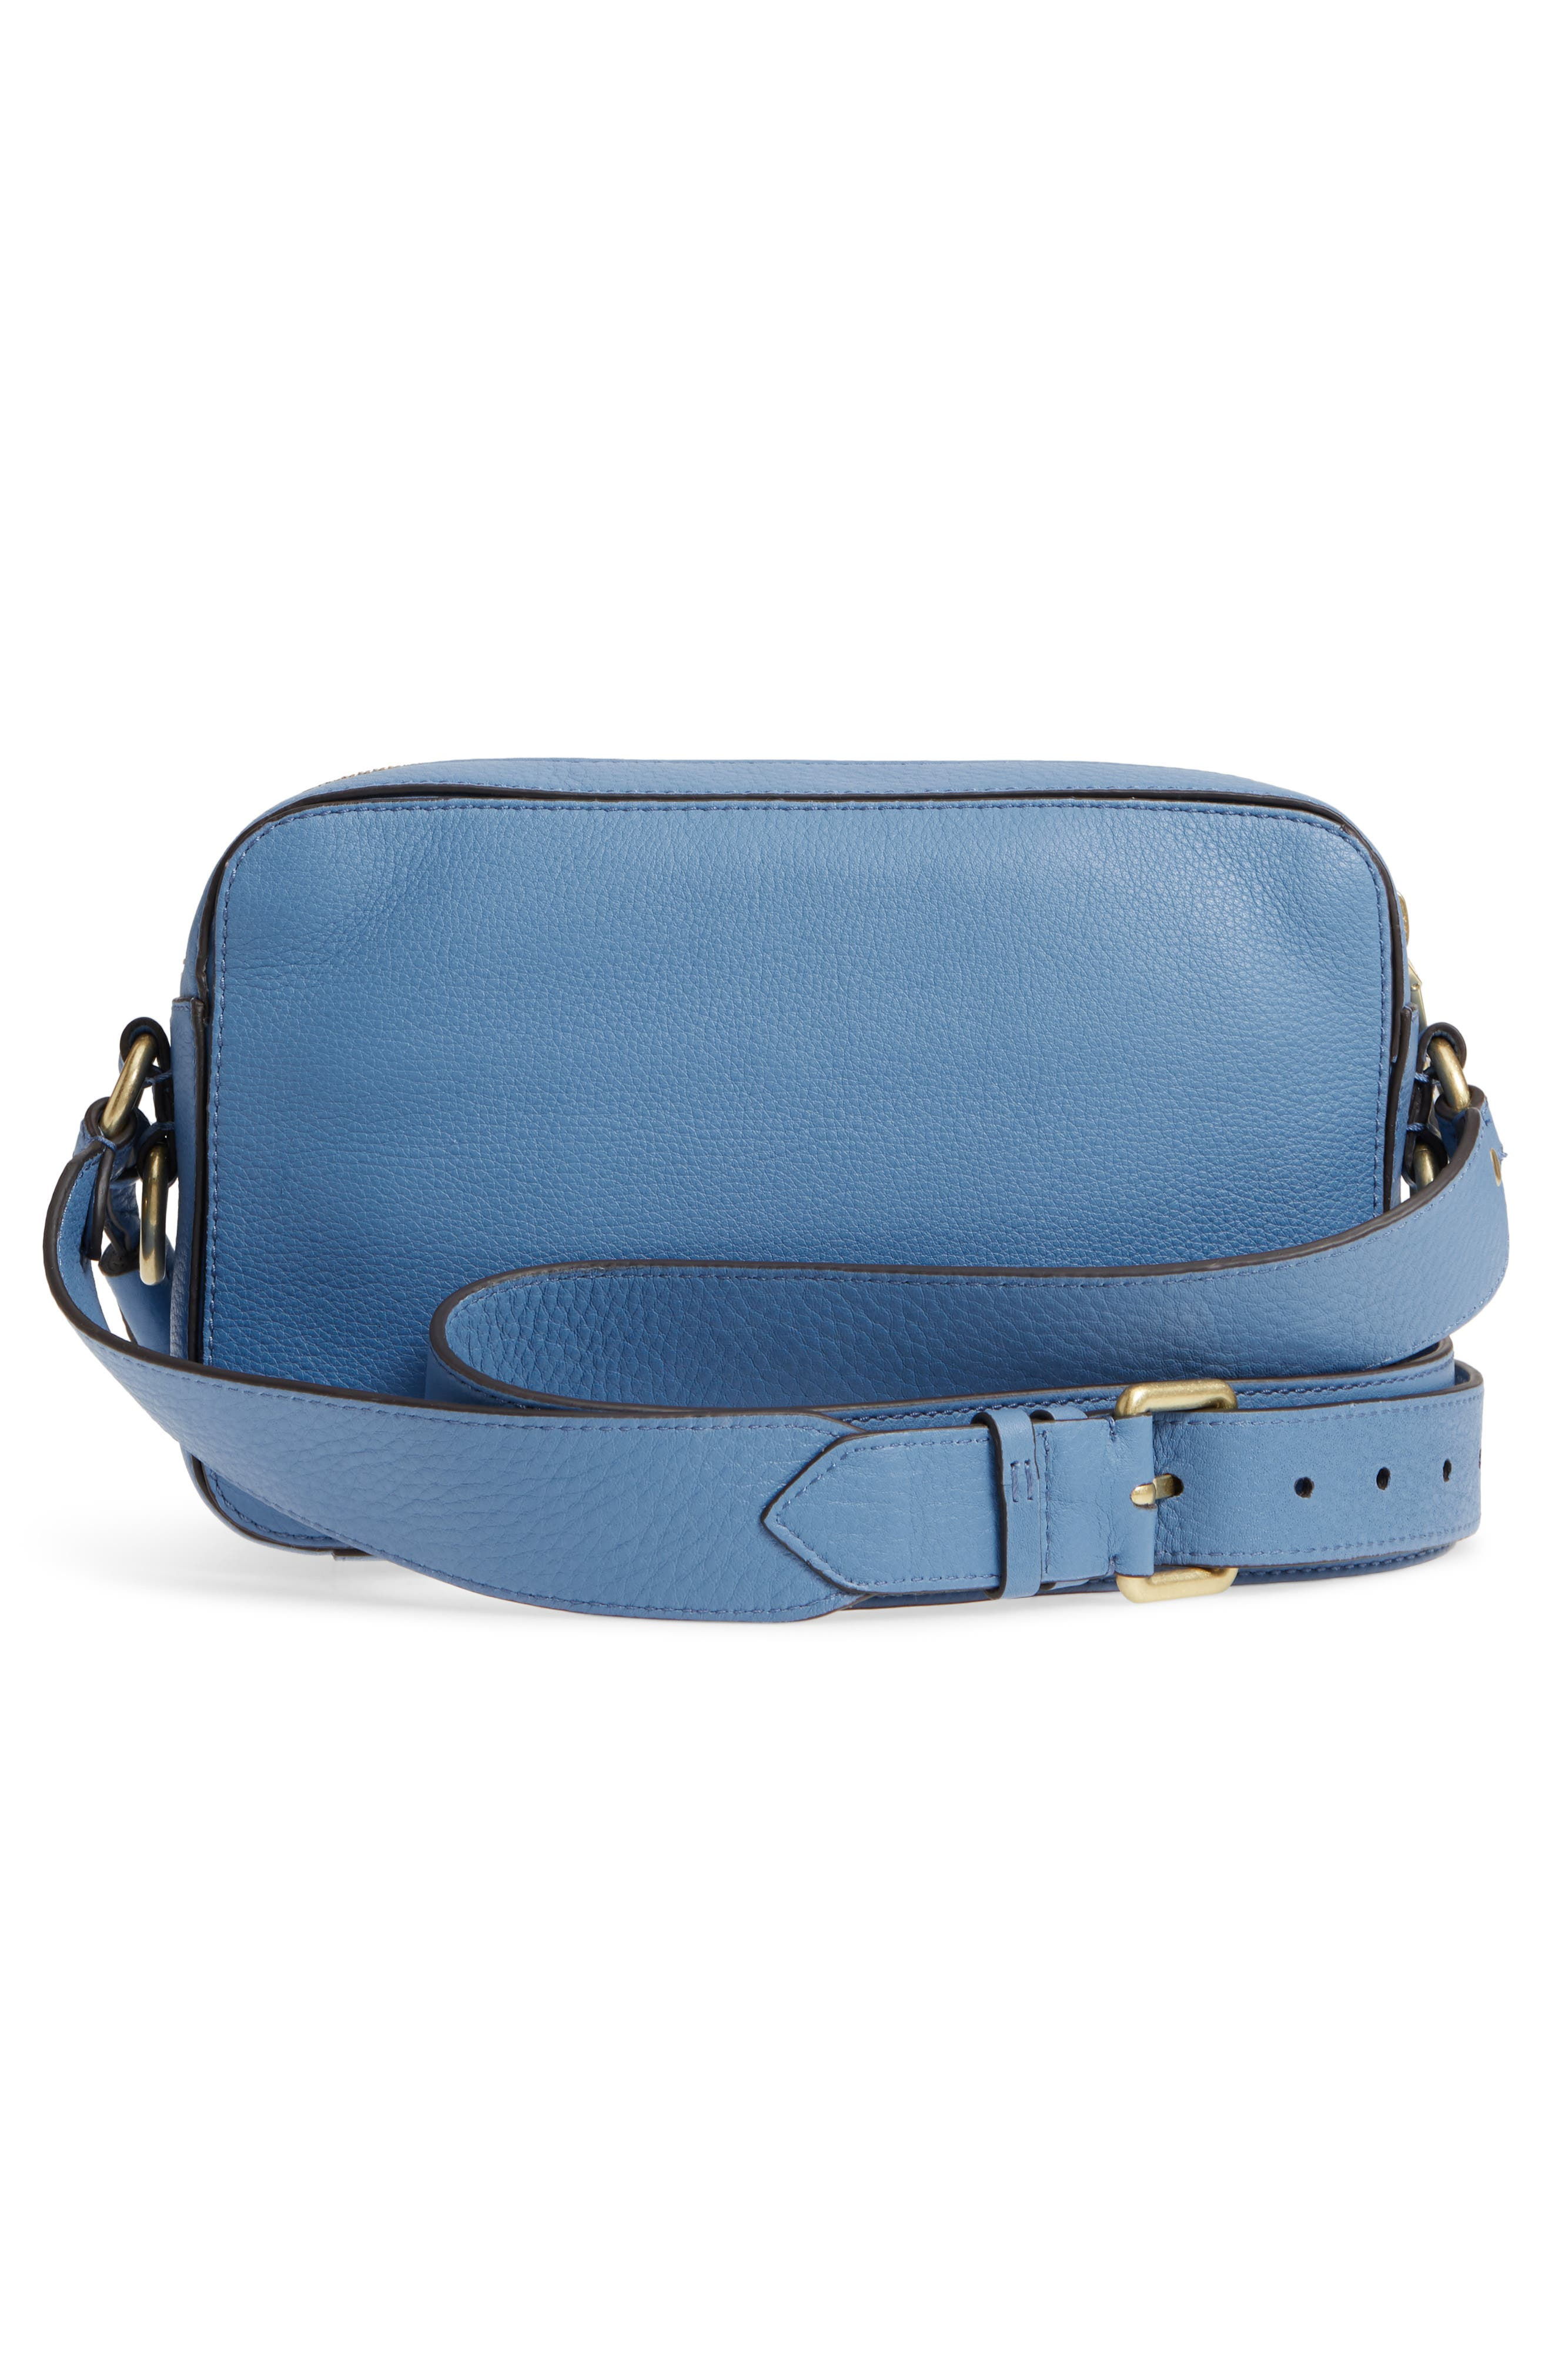 Cassidy RFID Pebbled Leather Camera Bag,                             Alternate thumbnail 12, color,